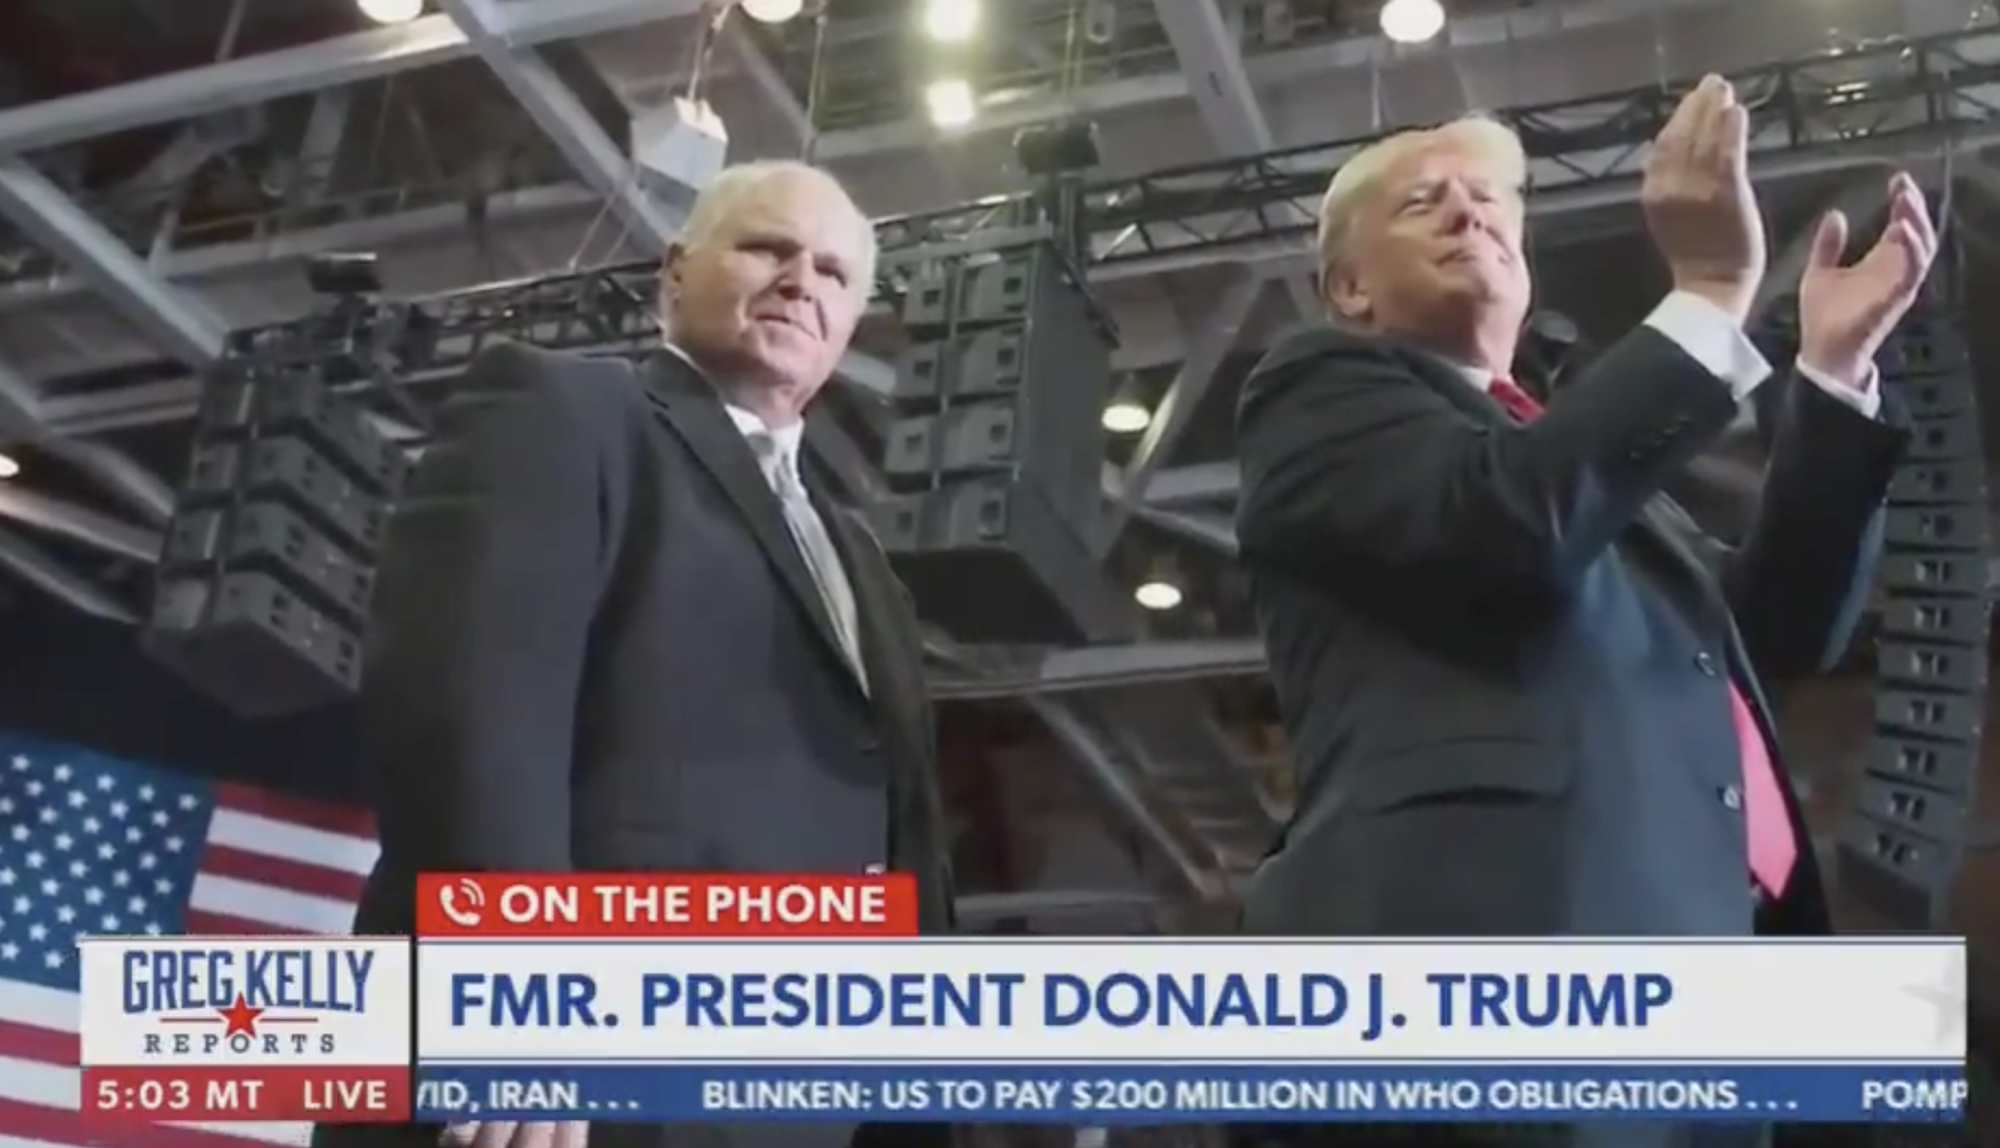 Trump takes right-wing media tour but says it's 'too early' to talk 2024 - Yahoo News